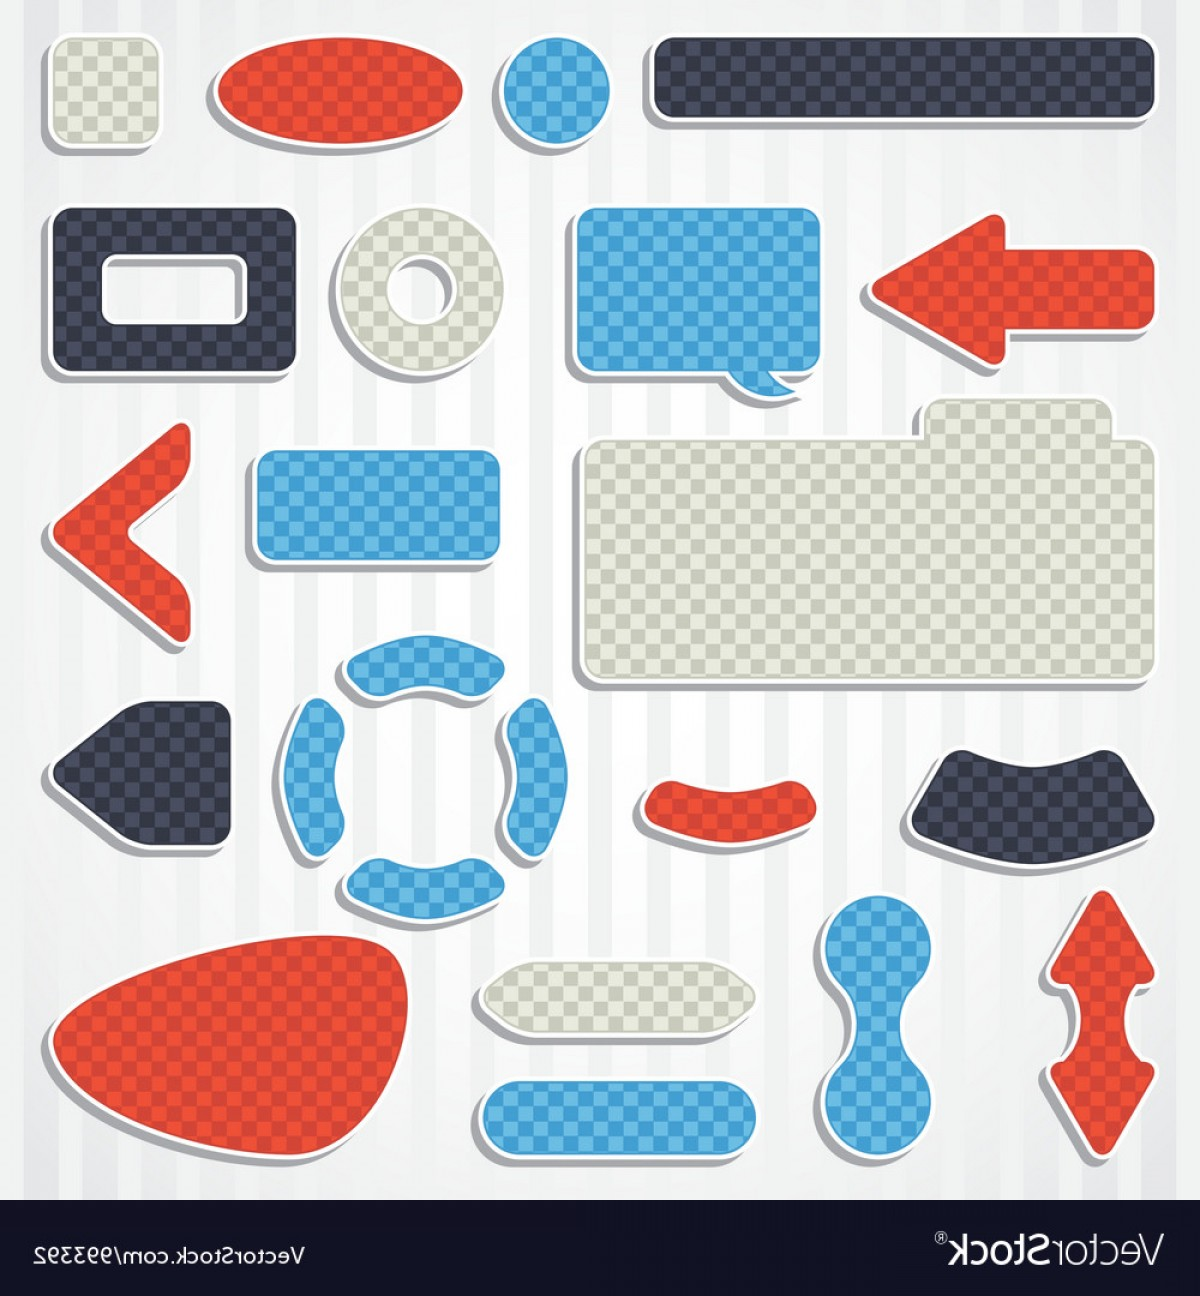 Vectors Buttons And Menus: Set Of Icons Buttons And Menus For Websites Vector